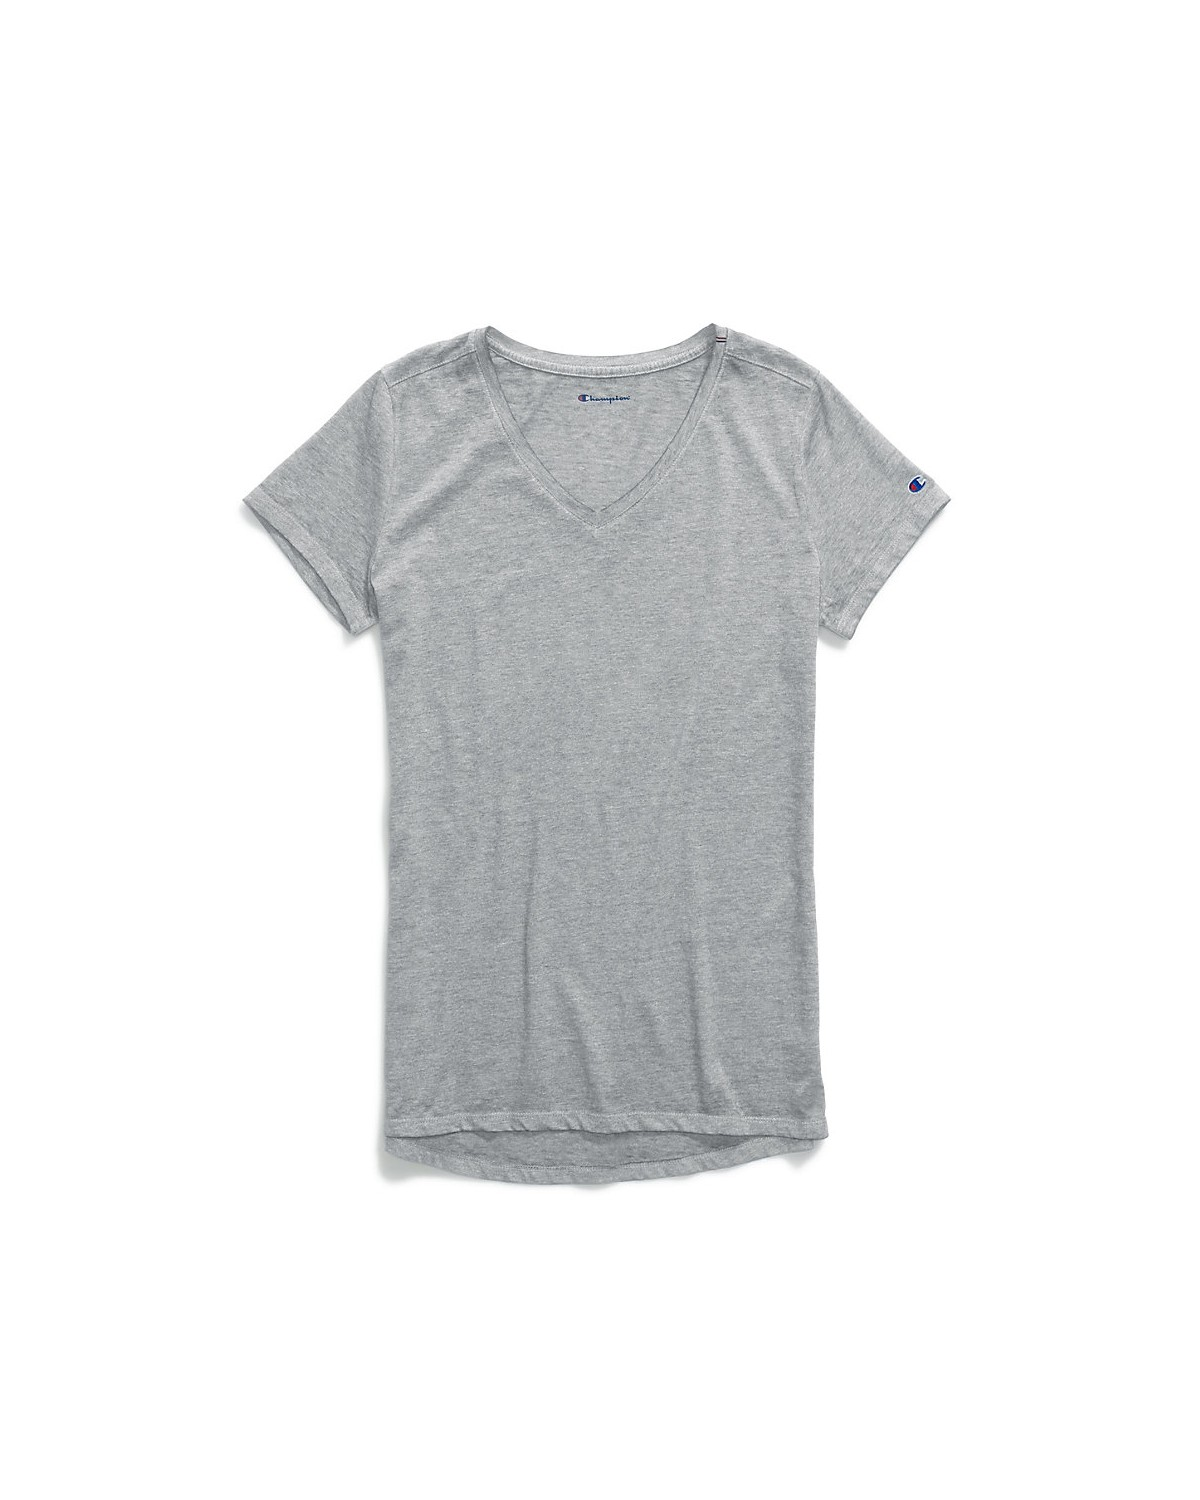 W0821 Champion Oxford Grey Heather